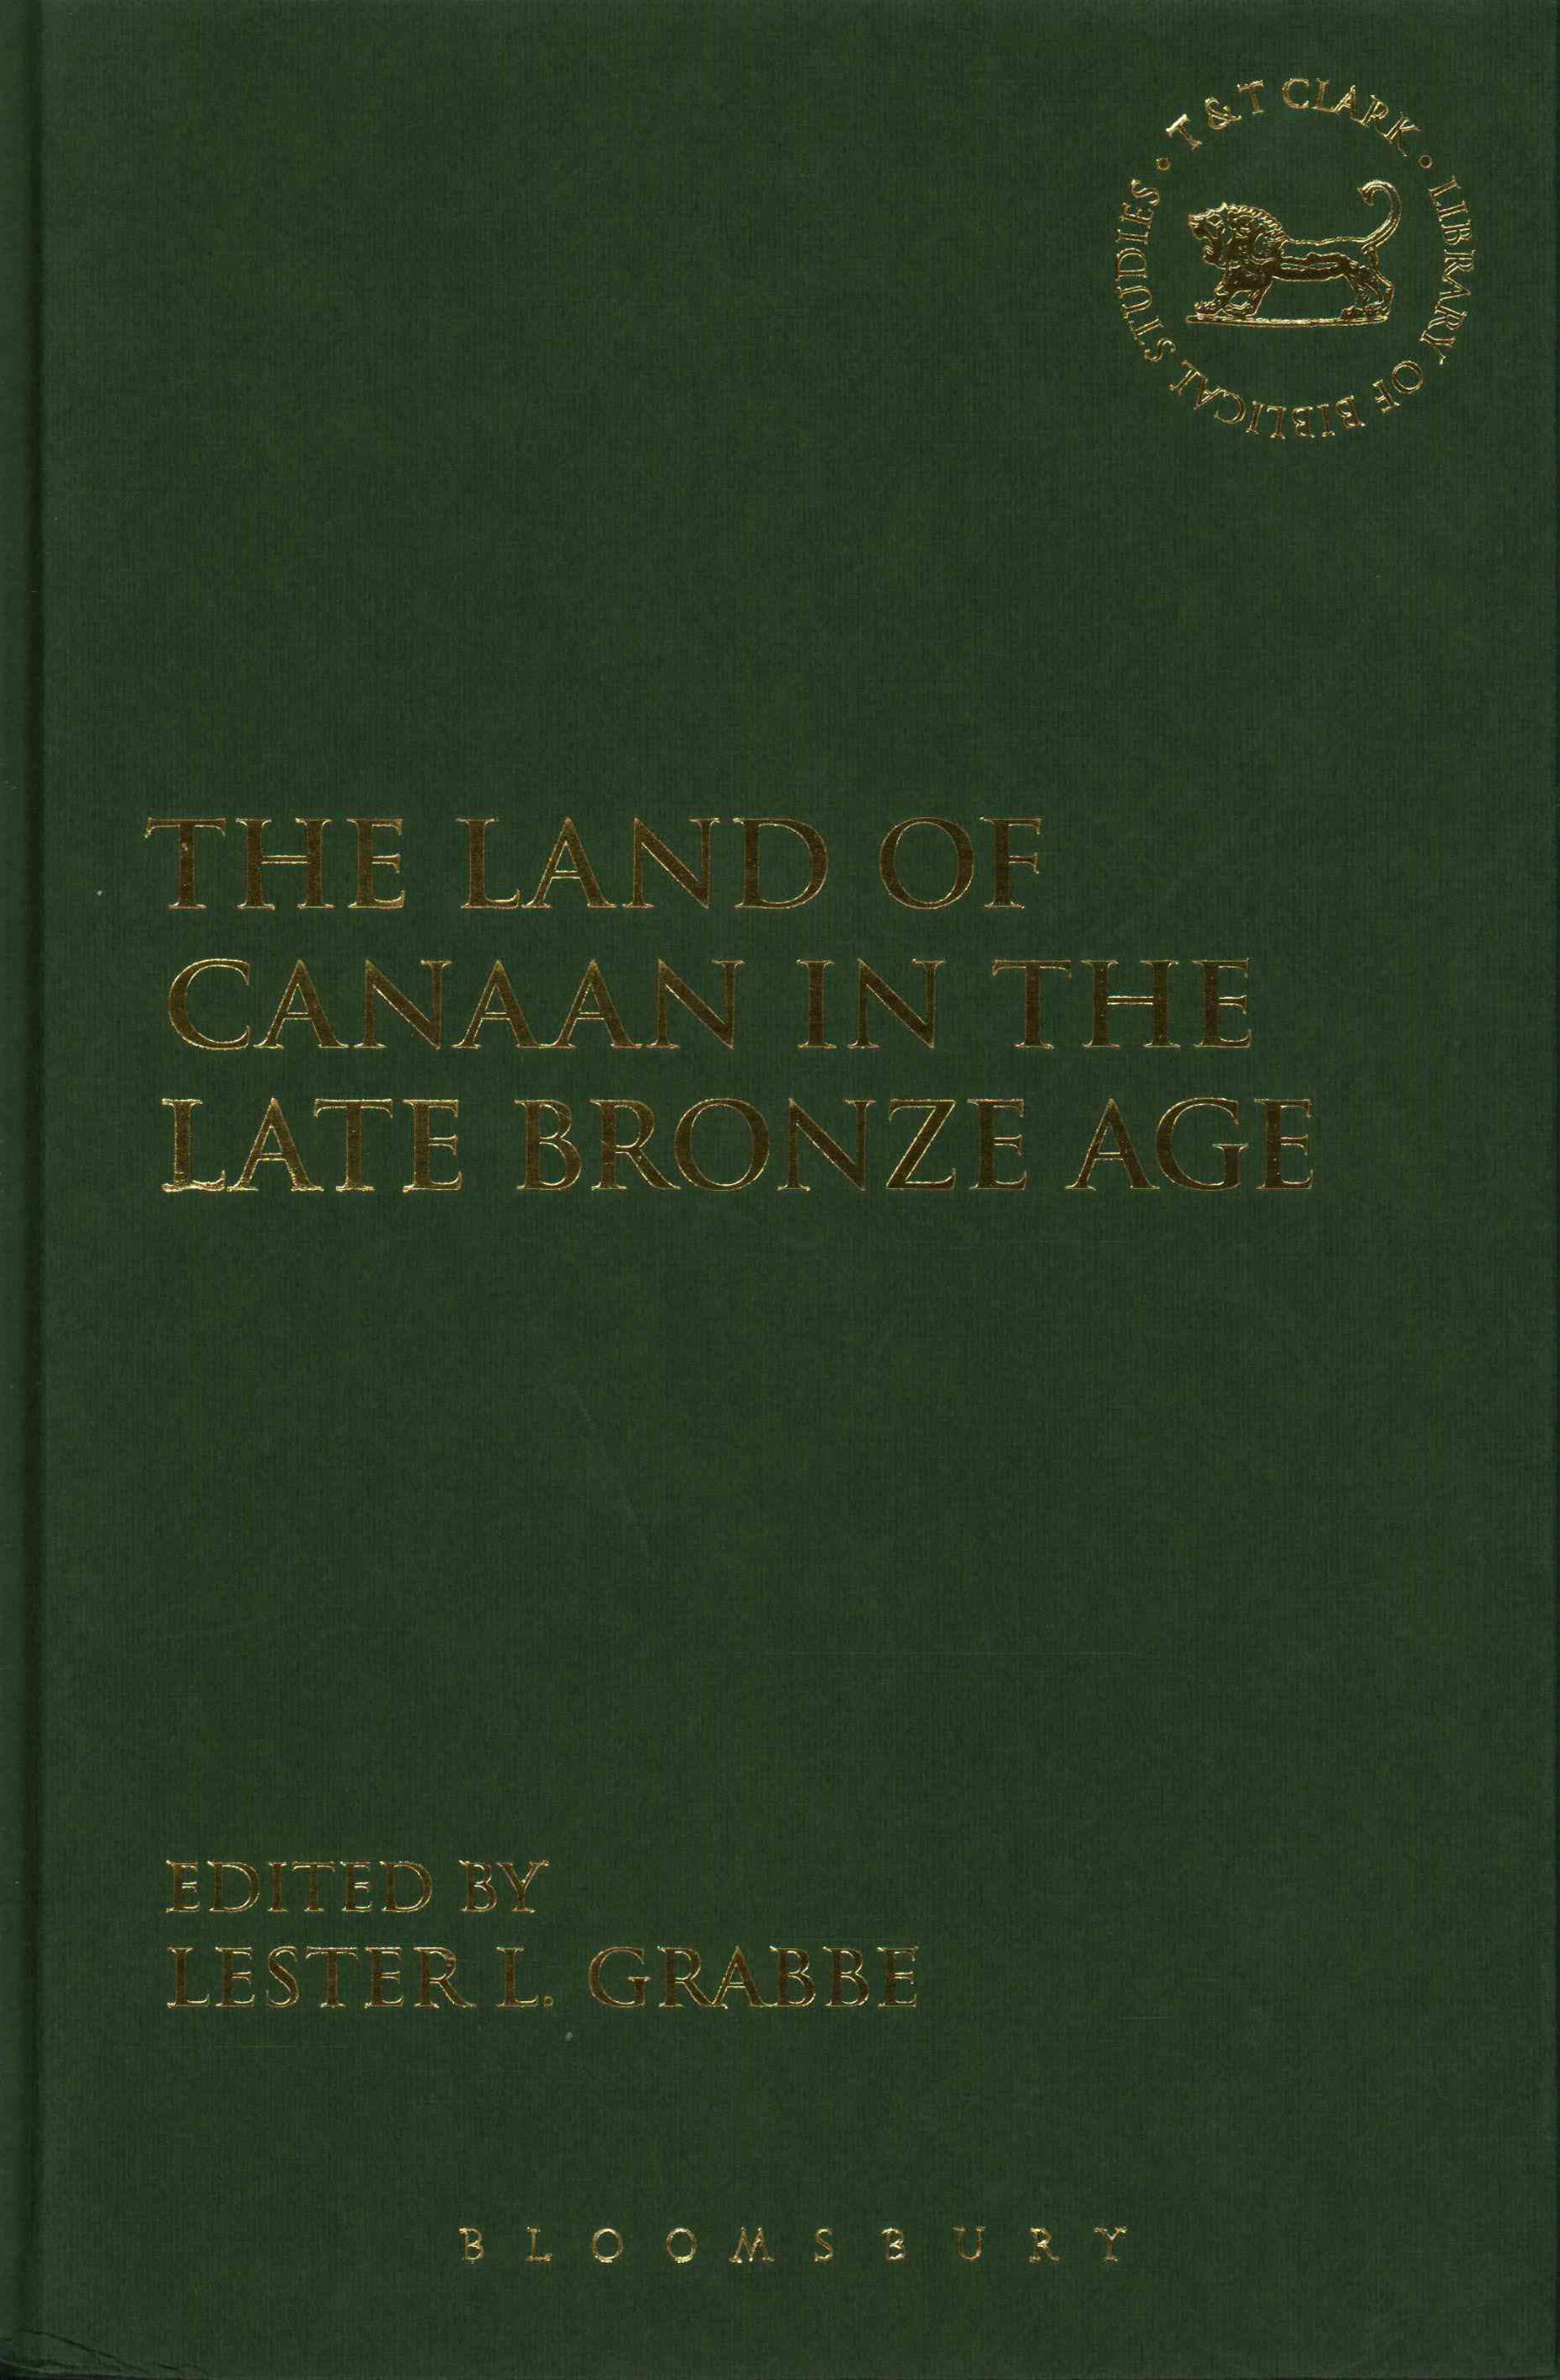 Land of Canaan in the Late Bronze Age